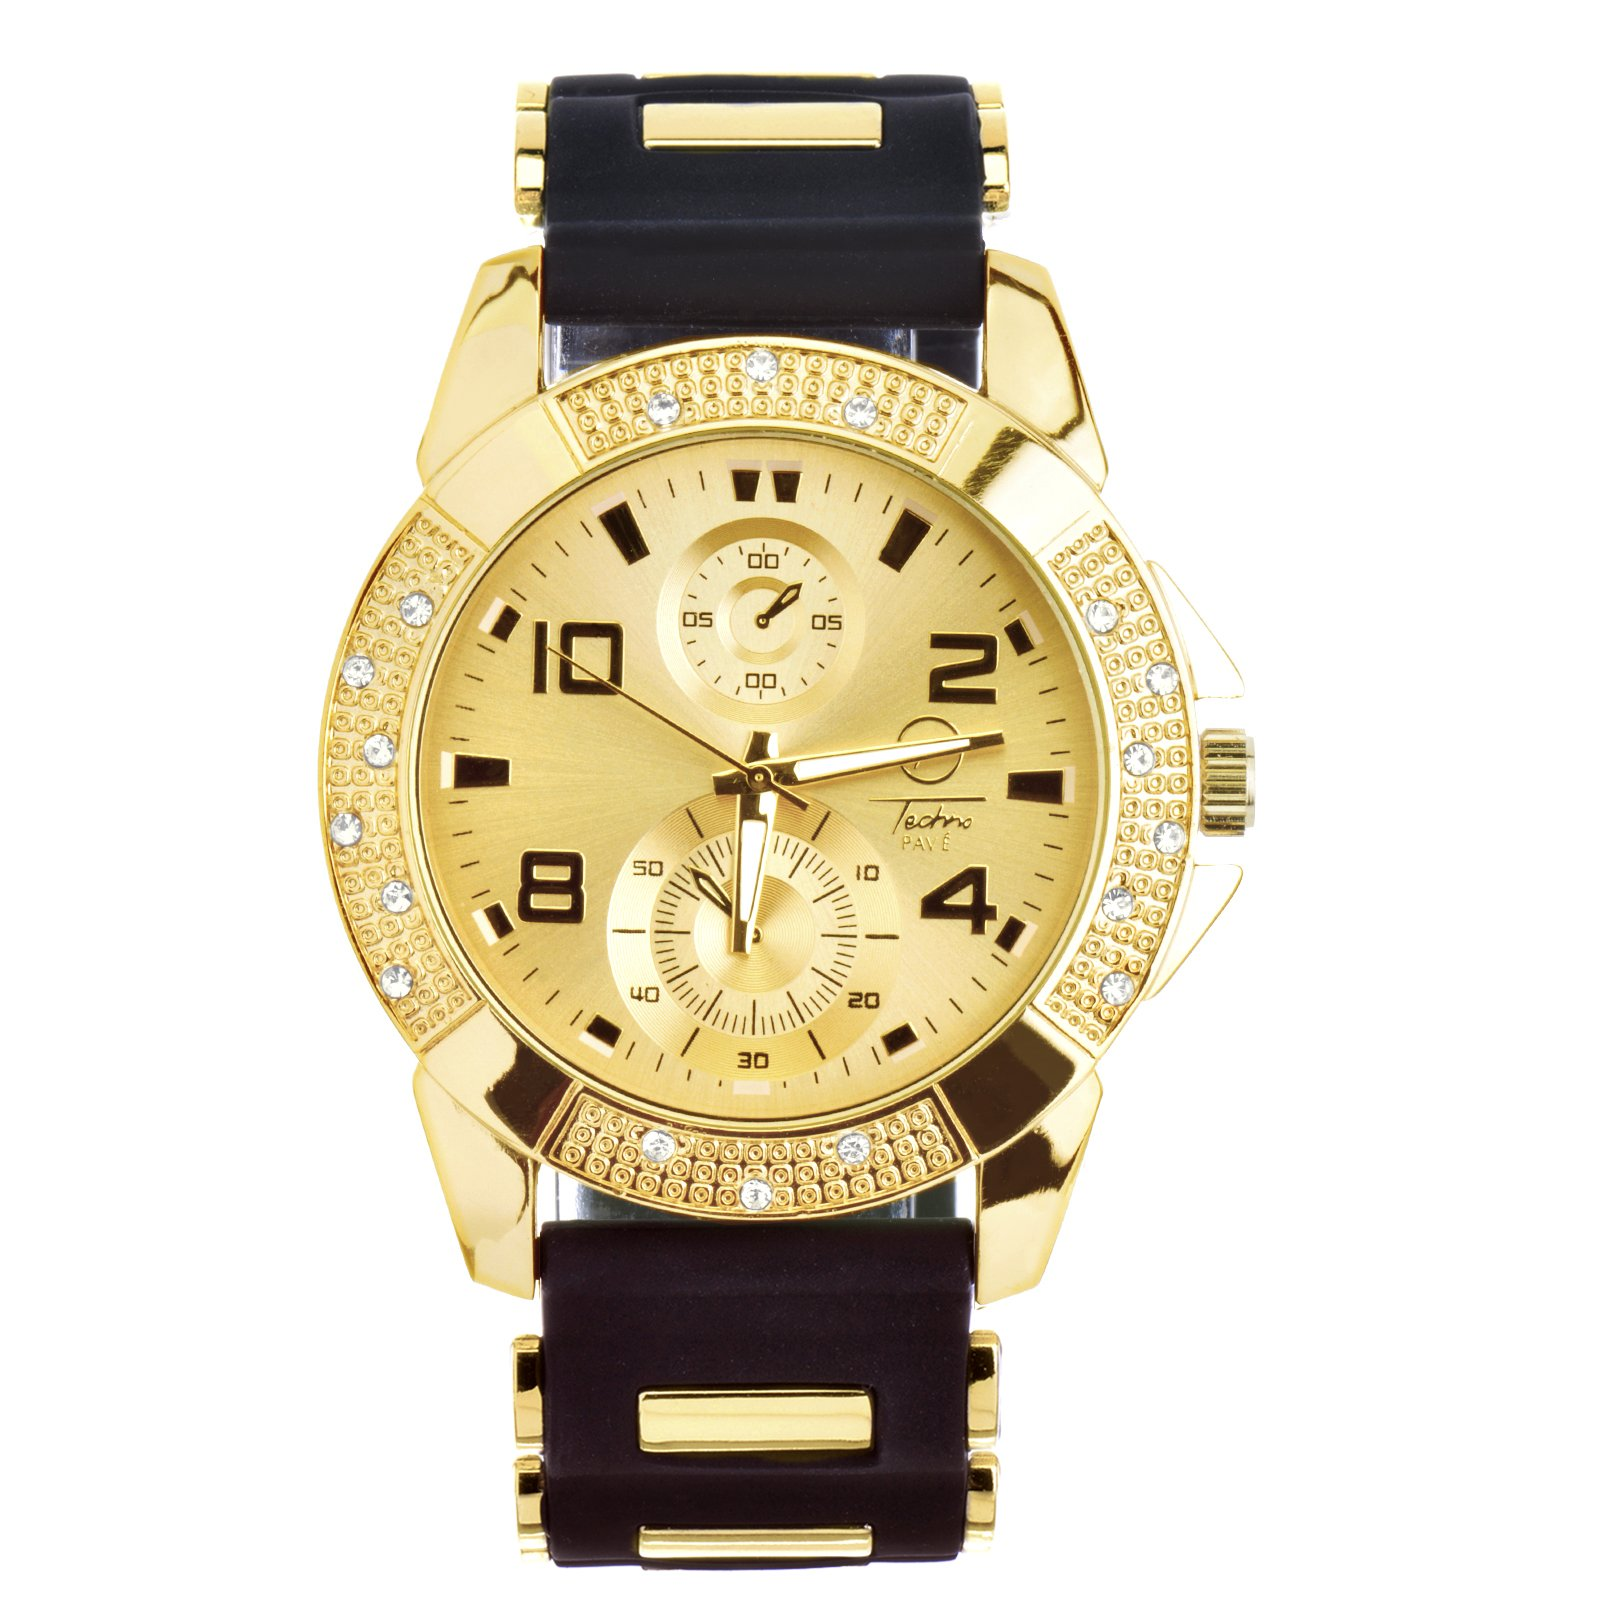 Men's Fashion Hip Hop Bling Iced Out Gold Plated Black Silicon Band Watch WR 8485 GBK by Techno Pave (Image #2)